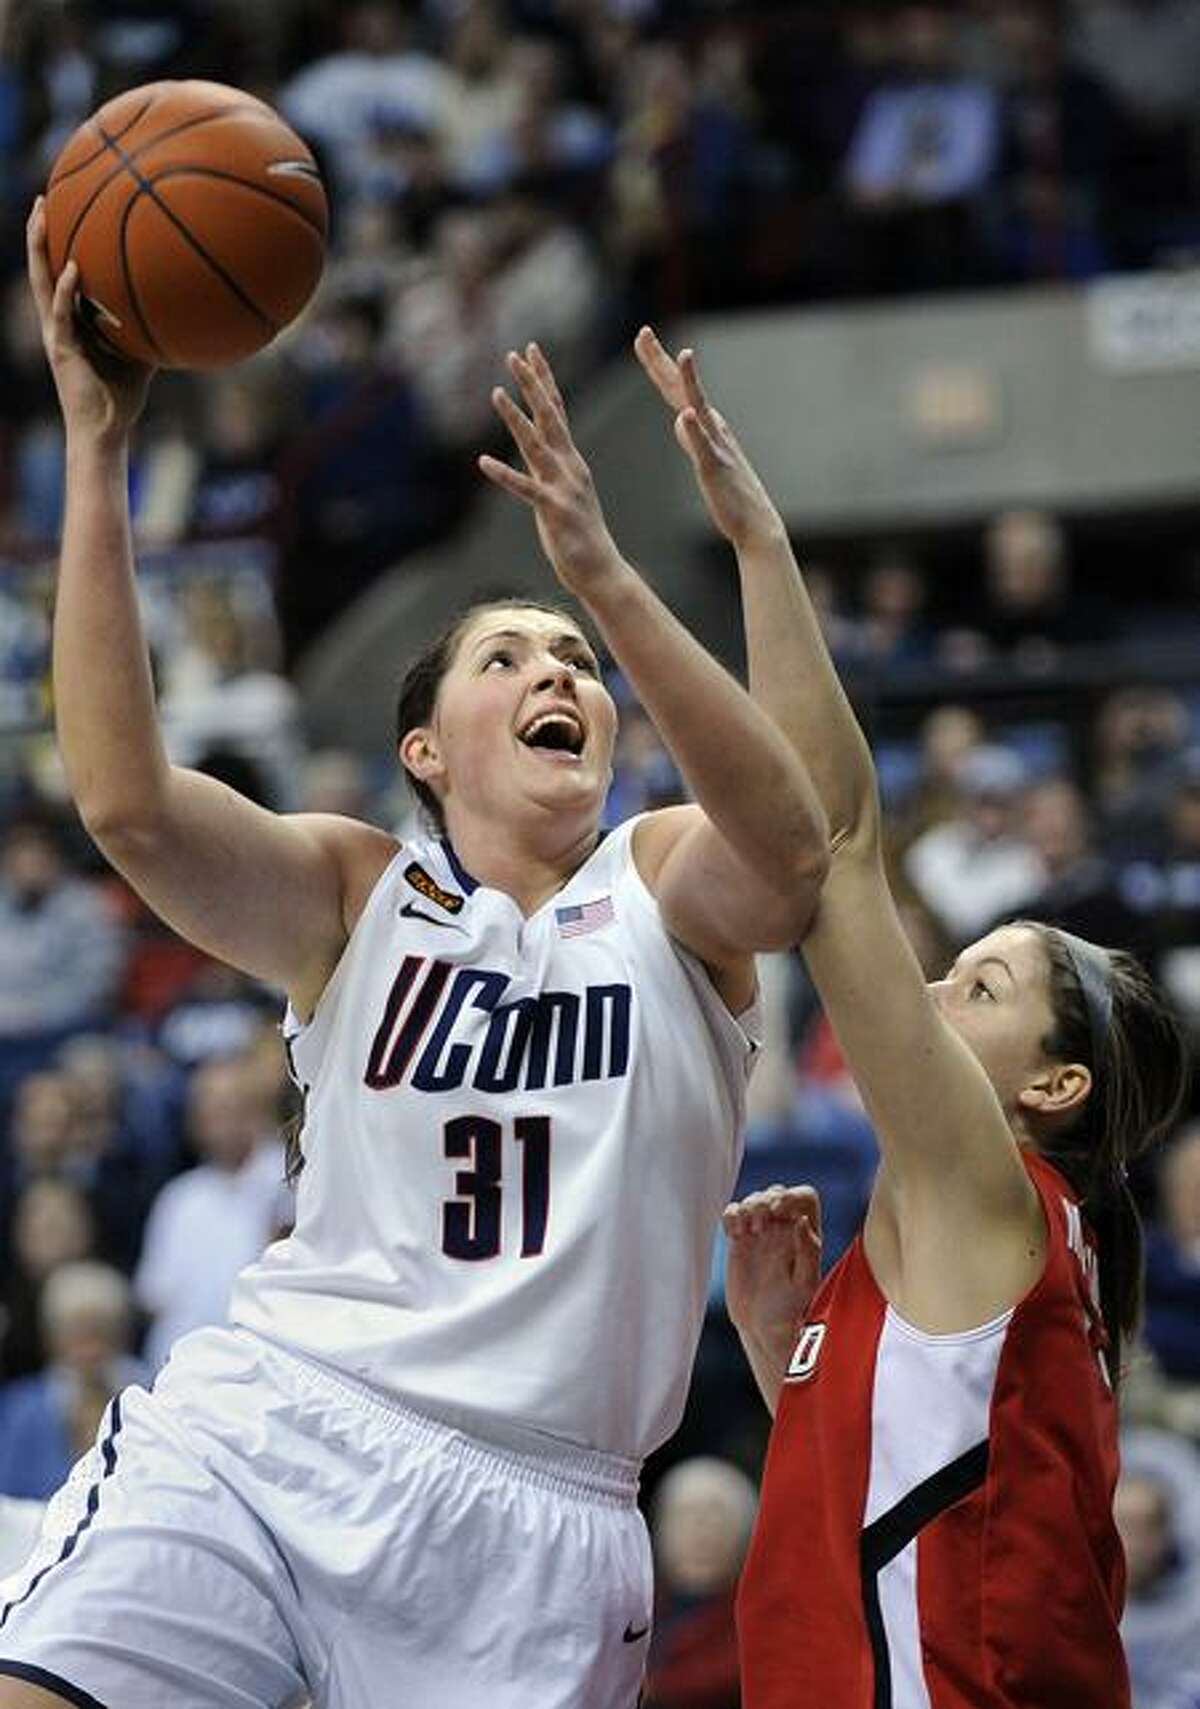 Connecticut's Stefanie Dolson, left, shoots over Fairfield's Brittany MacFarlane during the first half of an NCAA college basketball game, Thursday, Dec. 29, 2011, in Storrs, Conn. (AP Photo/Fred Beckham)